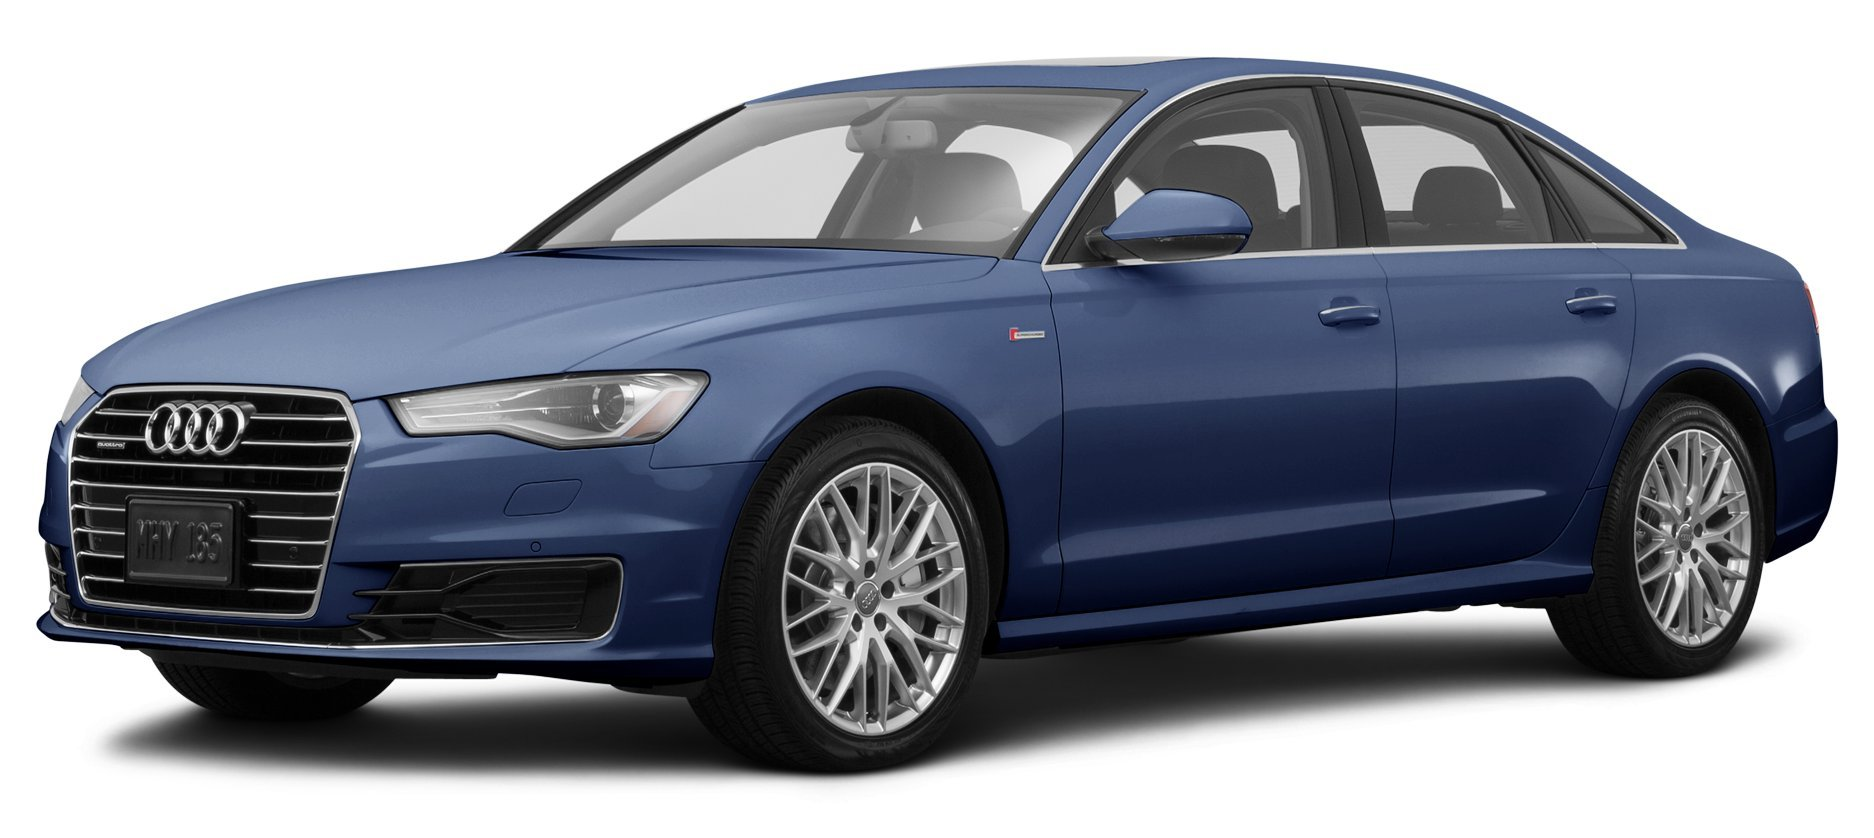 2016 audi a6 reviews images and specs vehicles. Black Bedroom Furniture Sets. Home Design Ideas